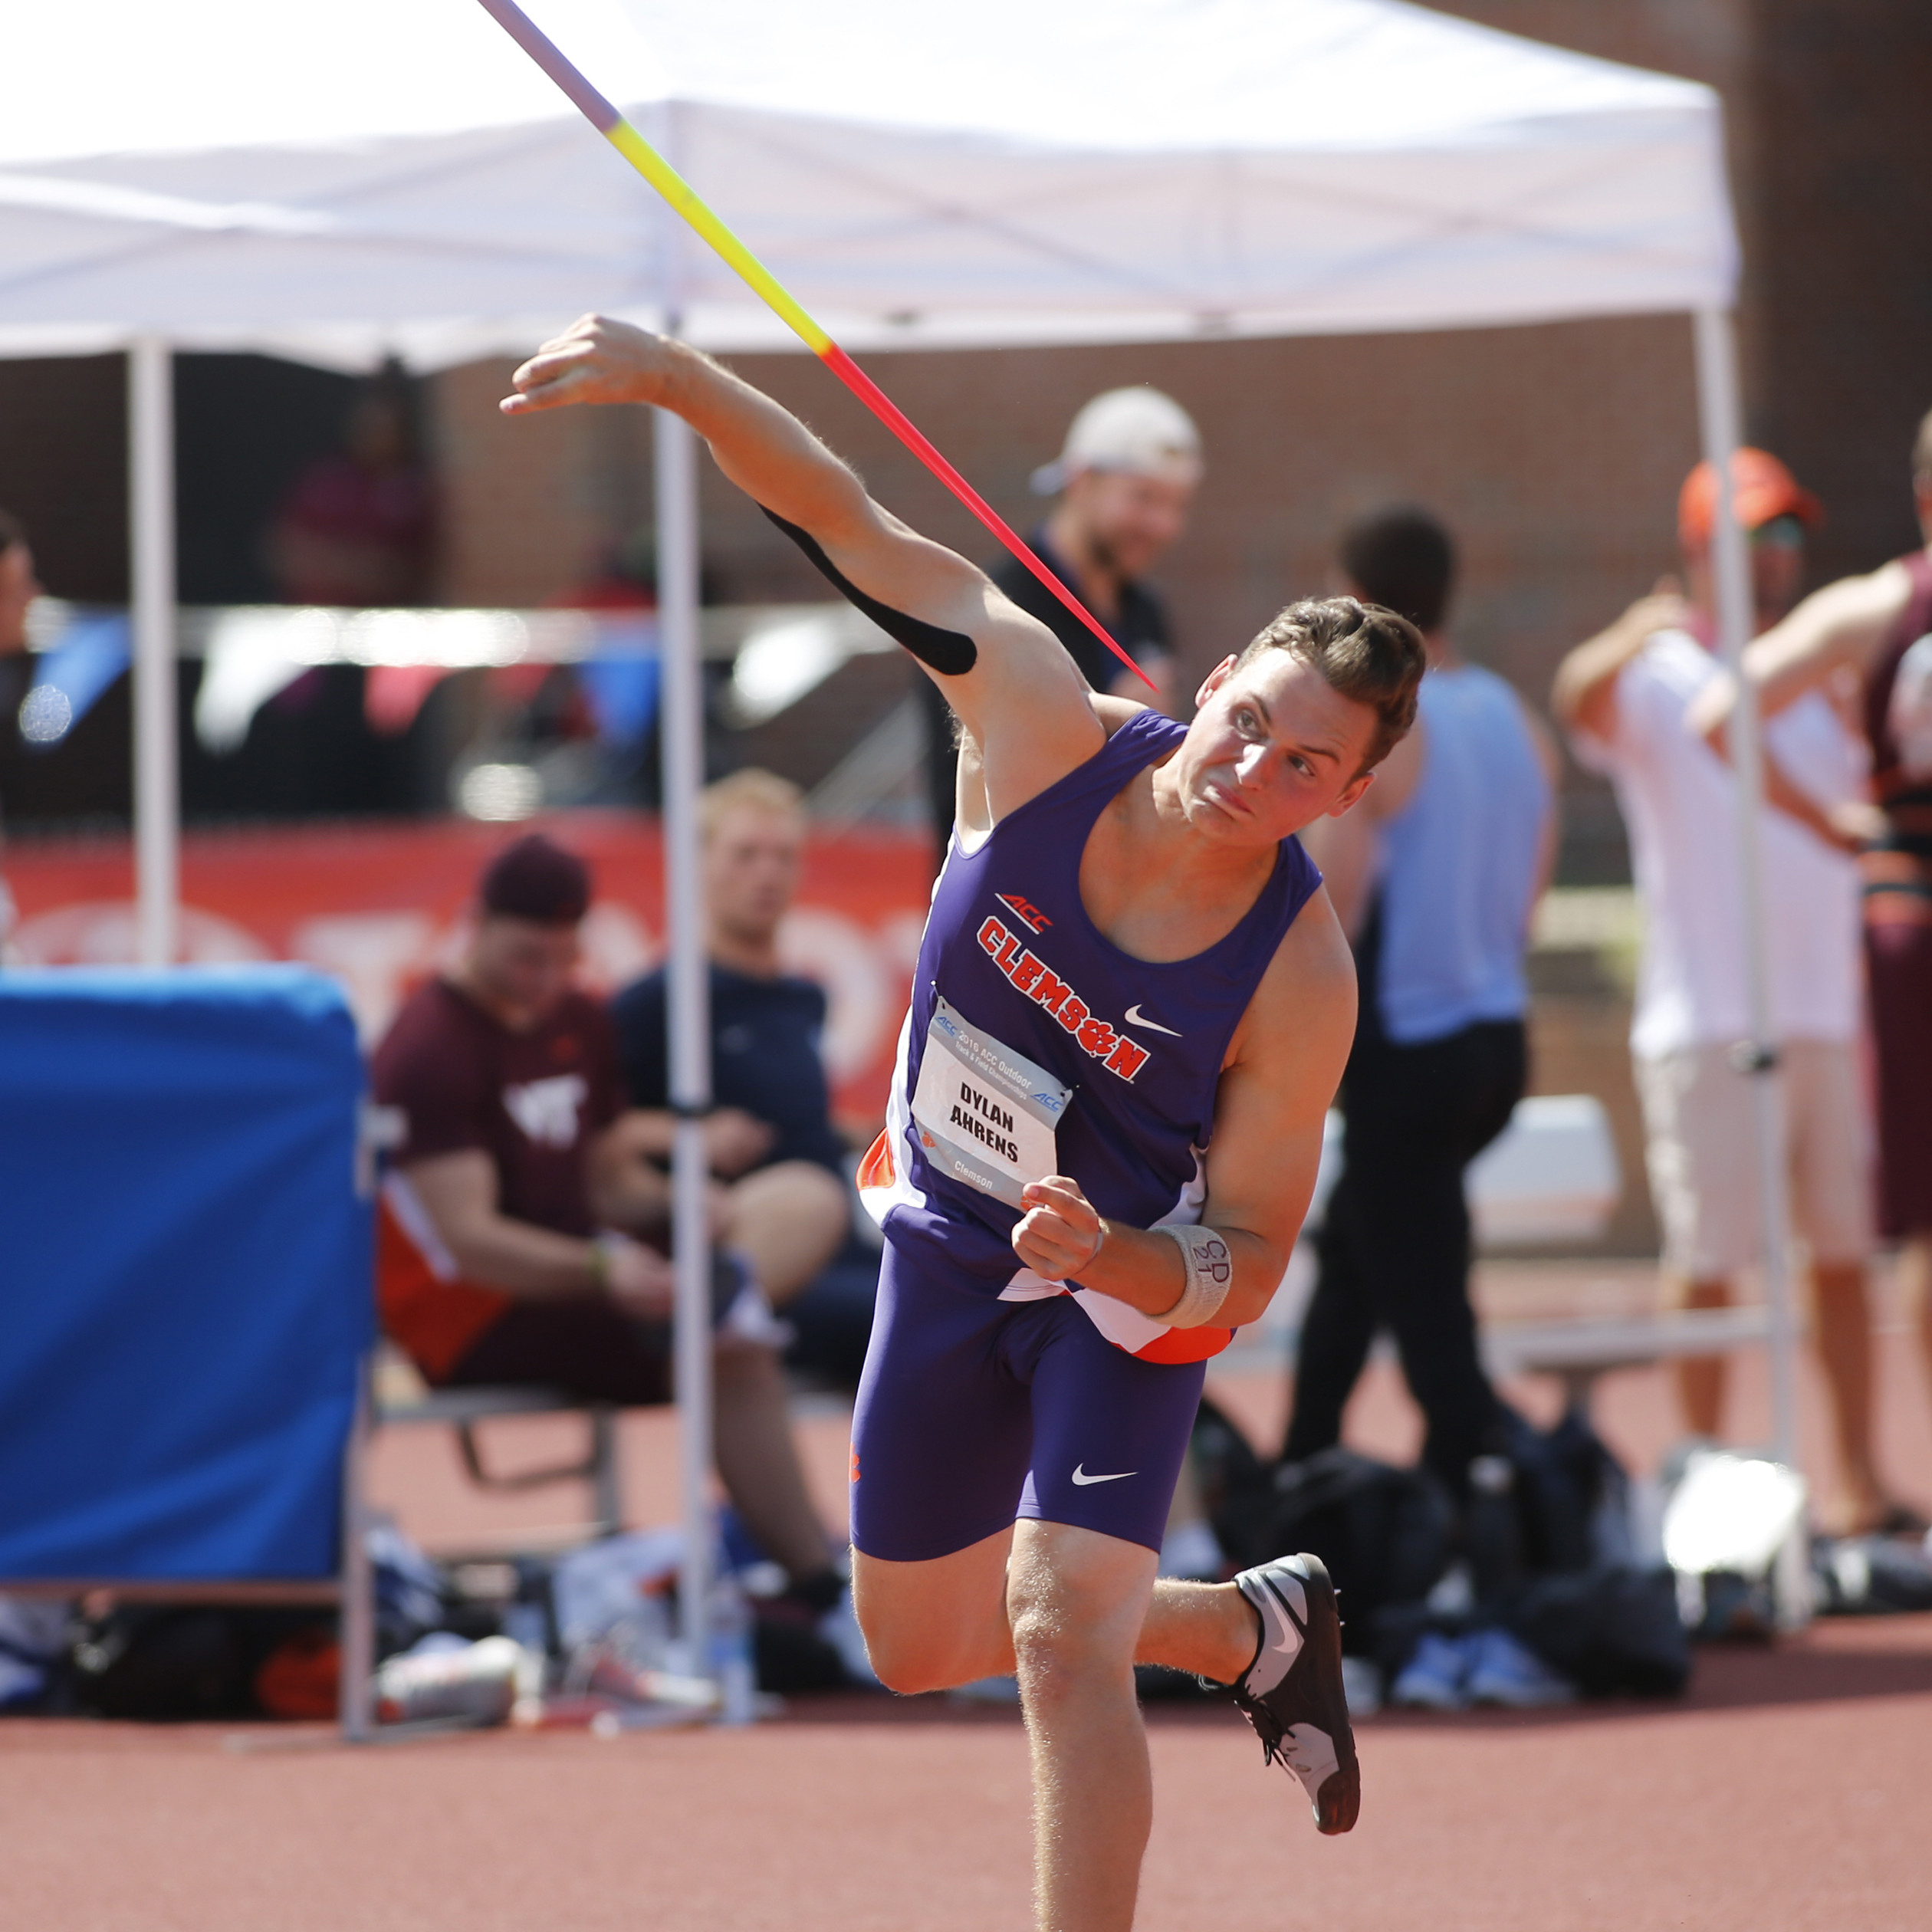 Ahrens Wins Javelin In 49er Classic